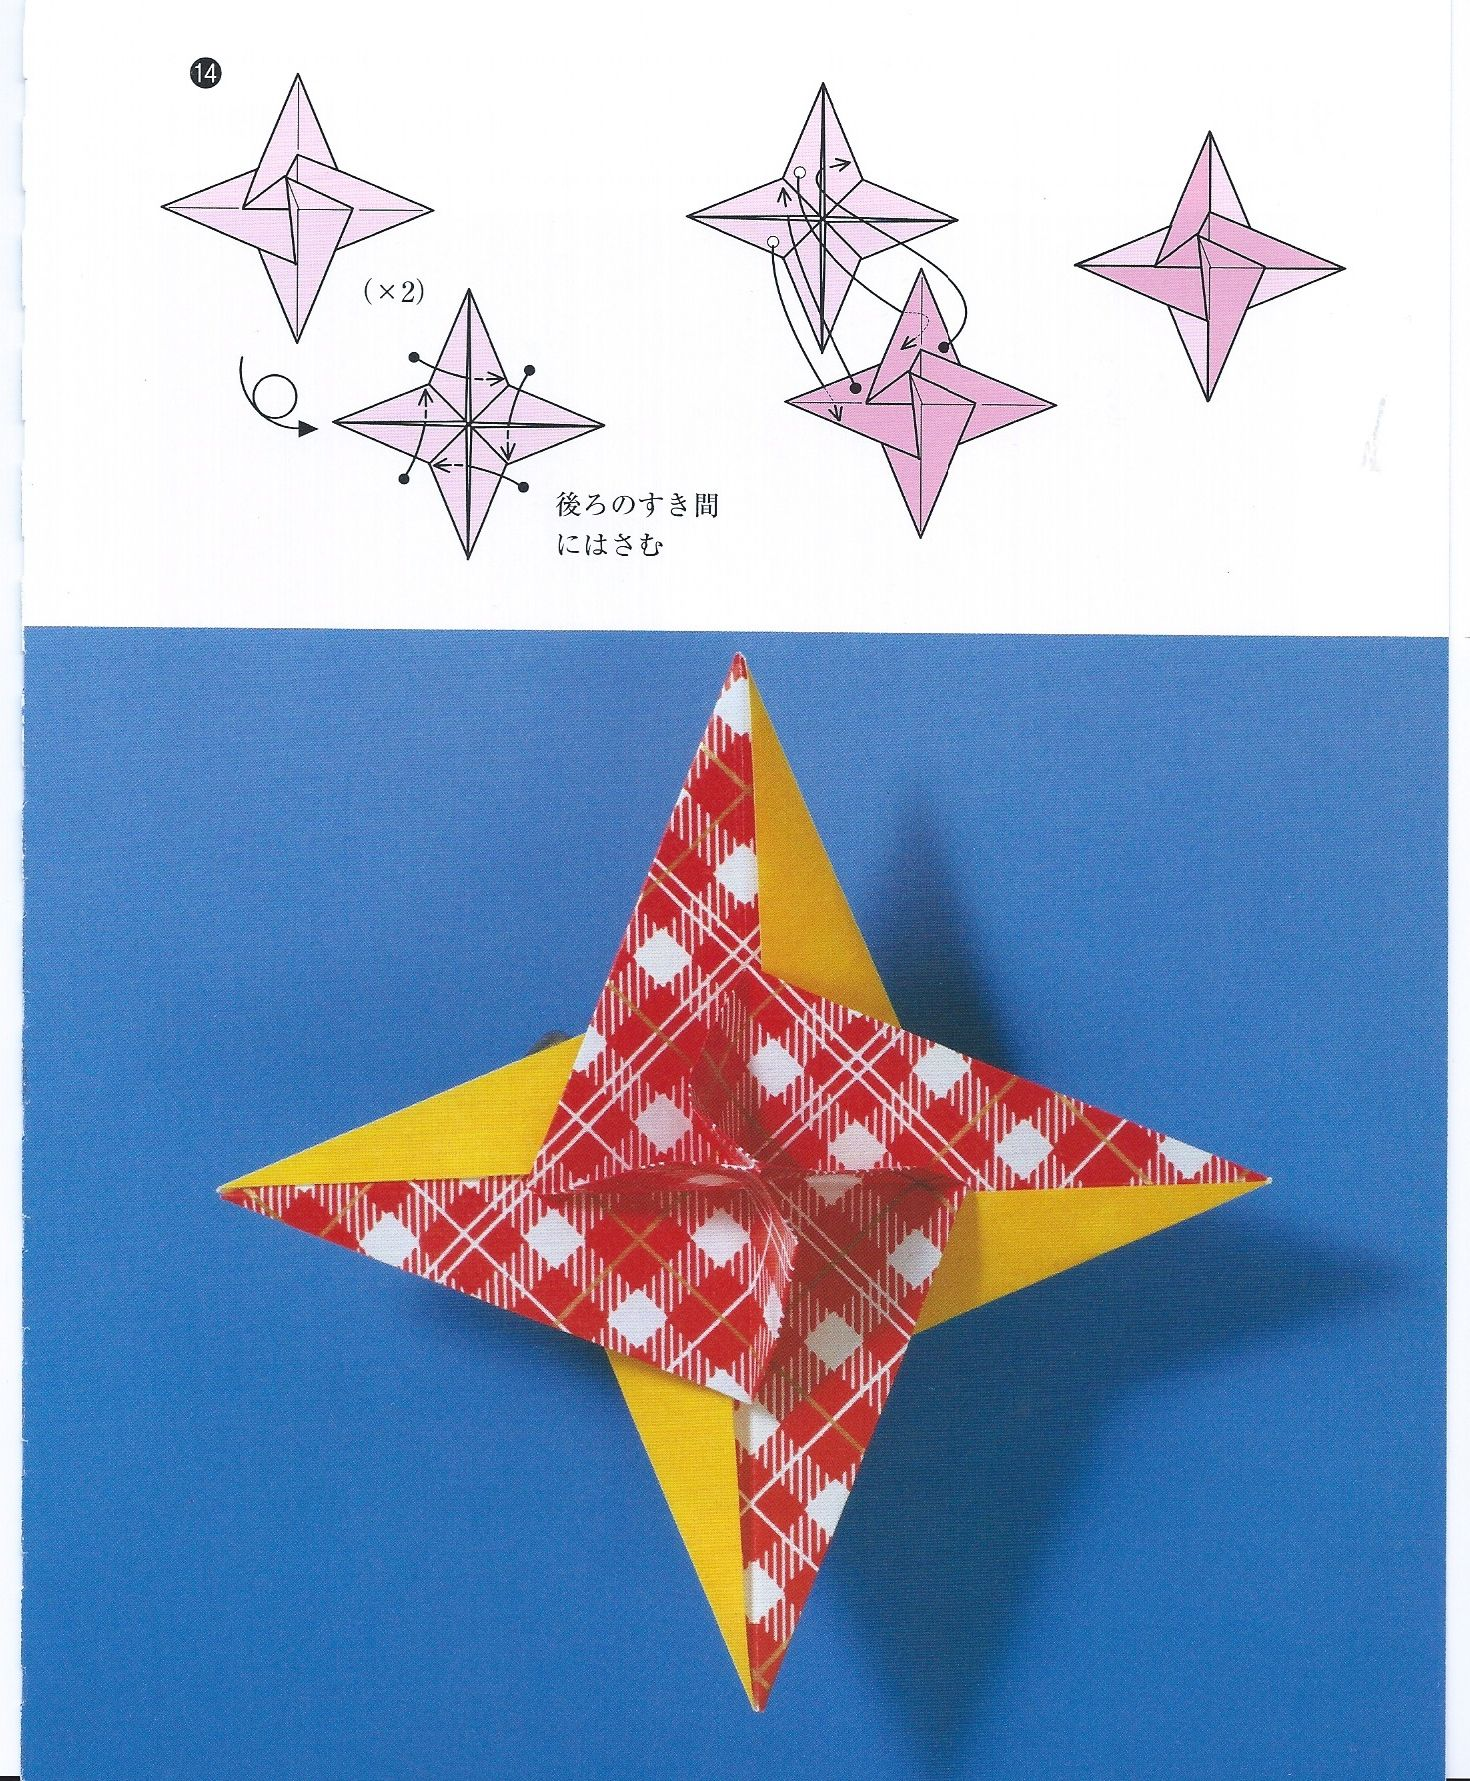 Diagrams for origami twist star by Tomoko Fuse. Page 2 of 2.